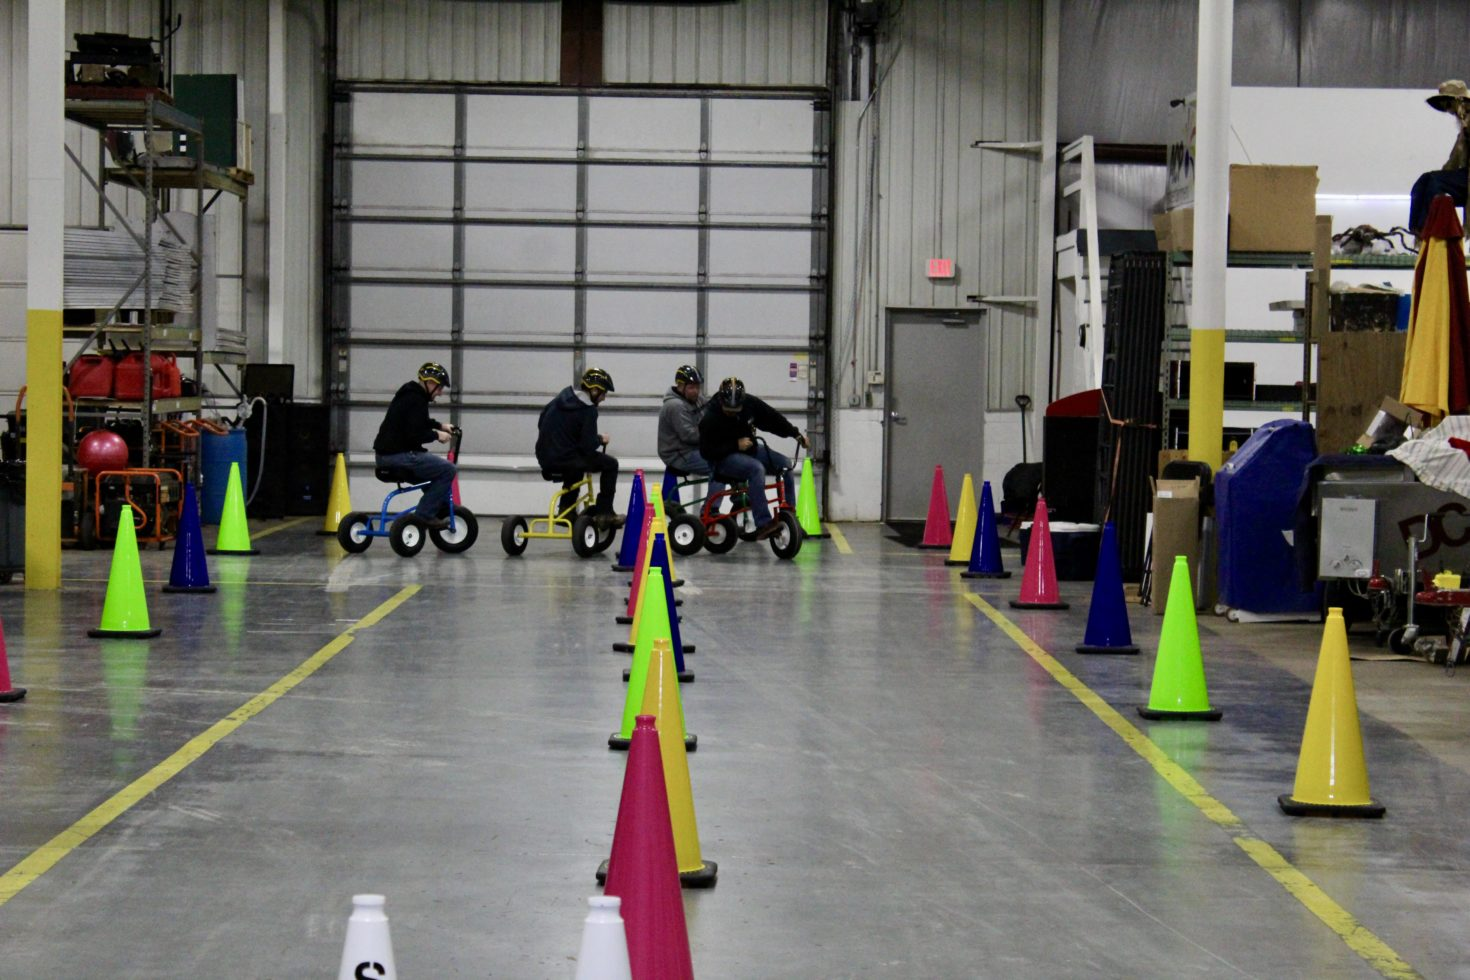 Wacky Trikes Race and course